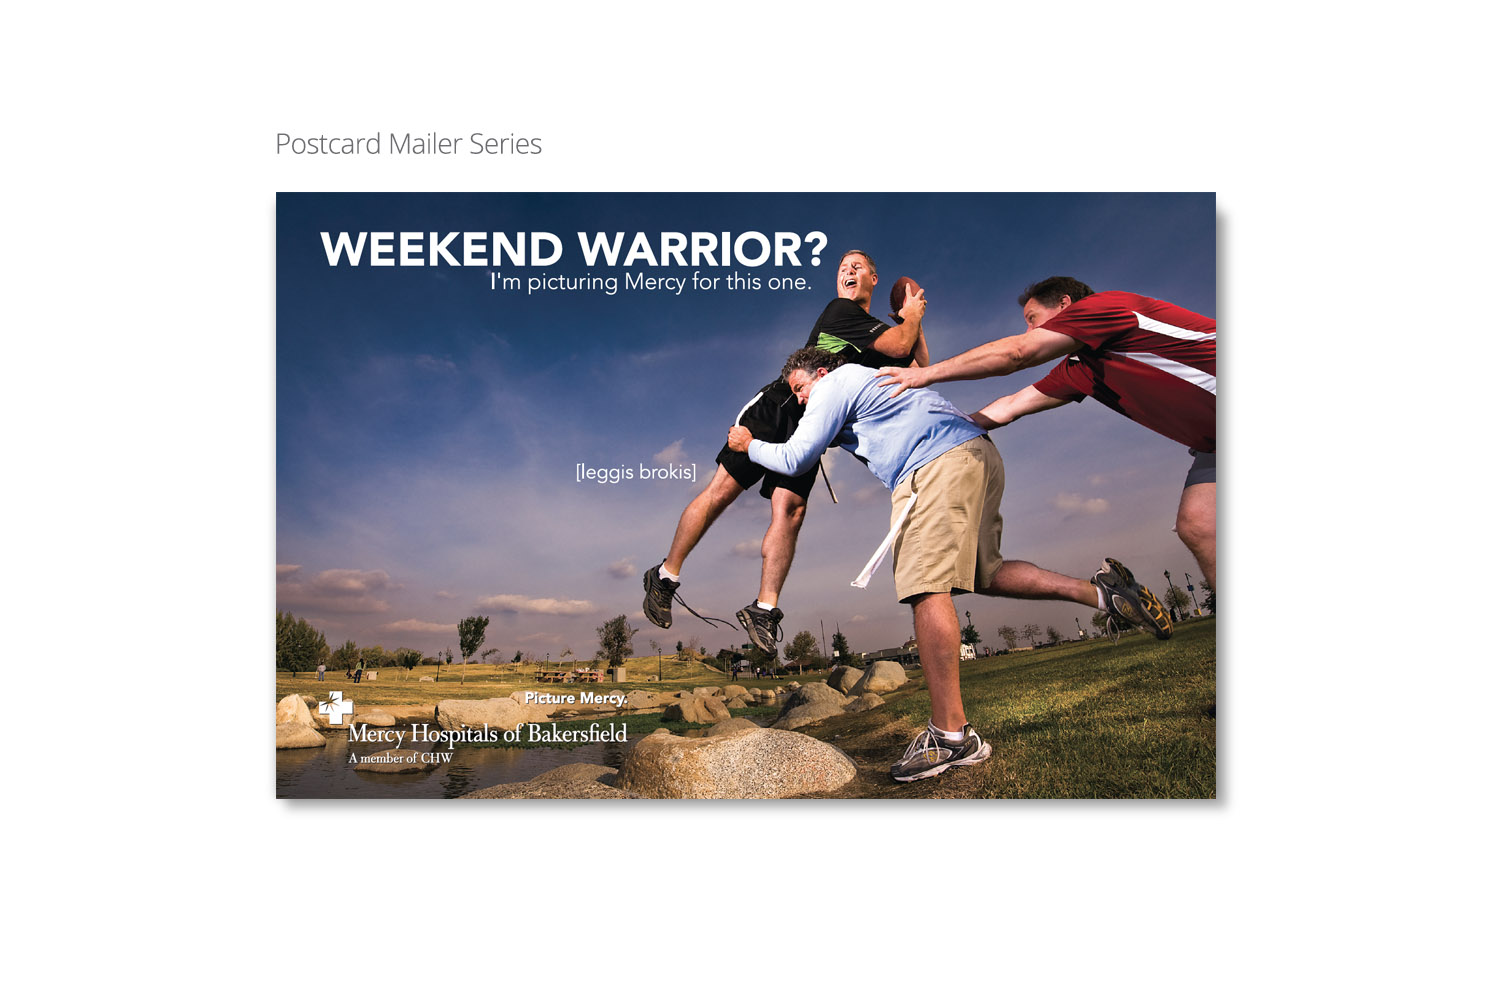 Mercy ER postcard campaign by DMI Agency, Visalia, CA - Weekend Warrior